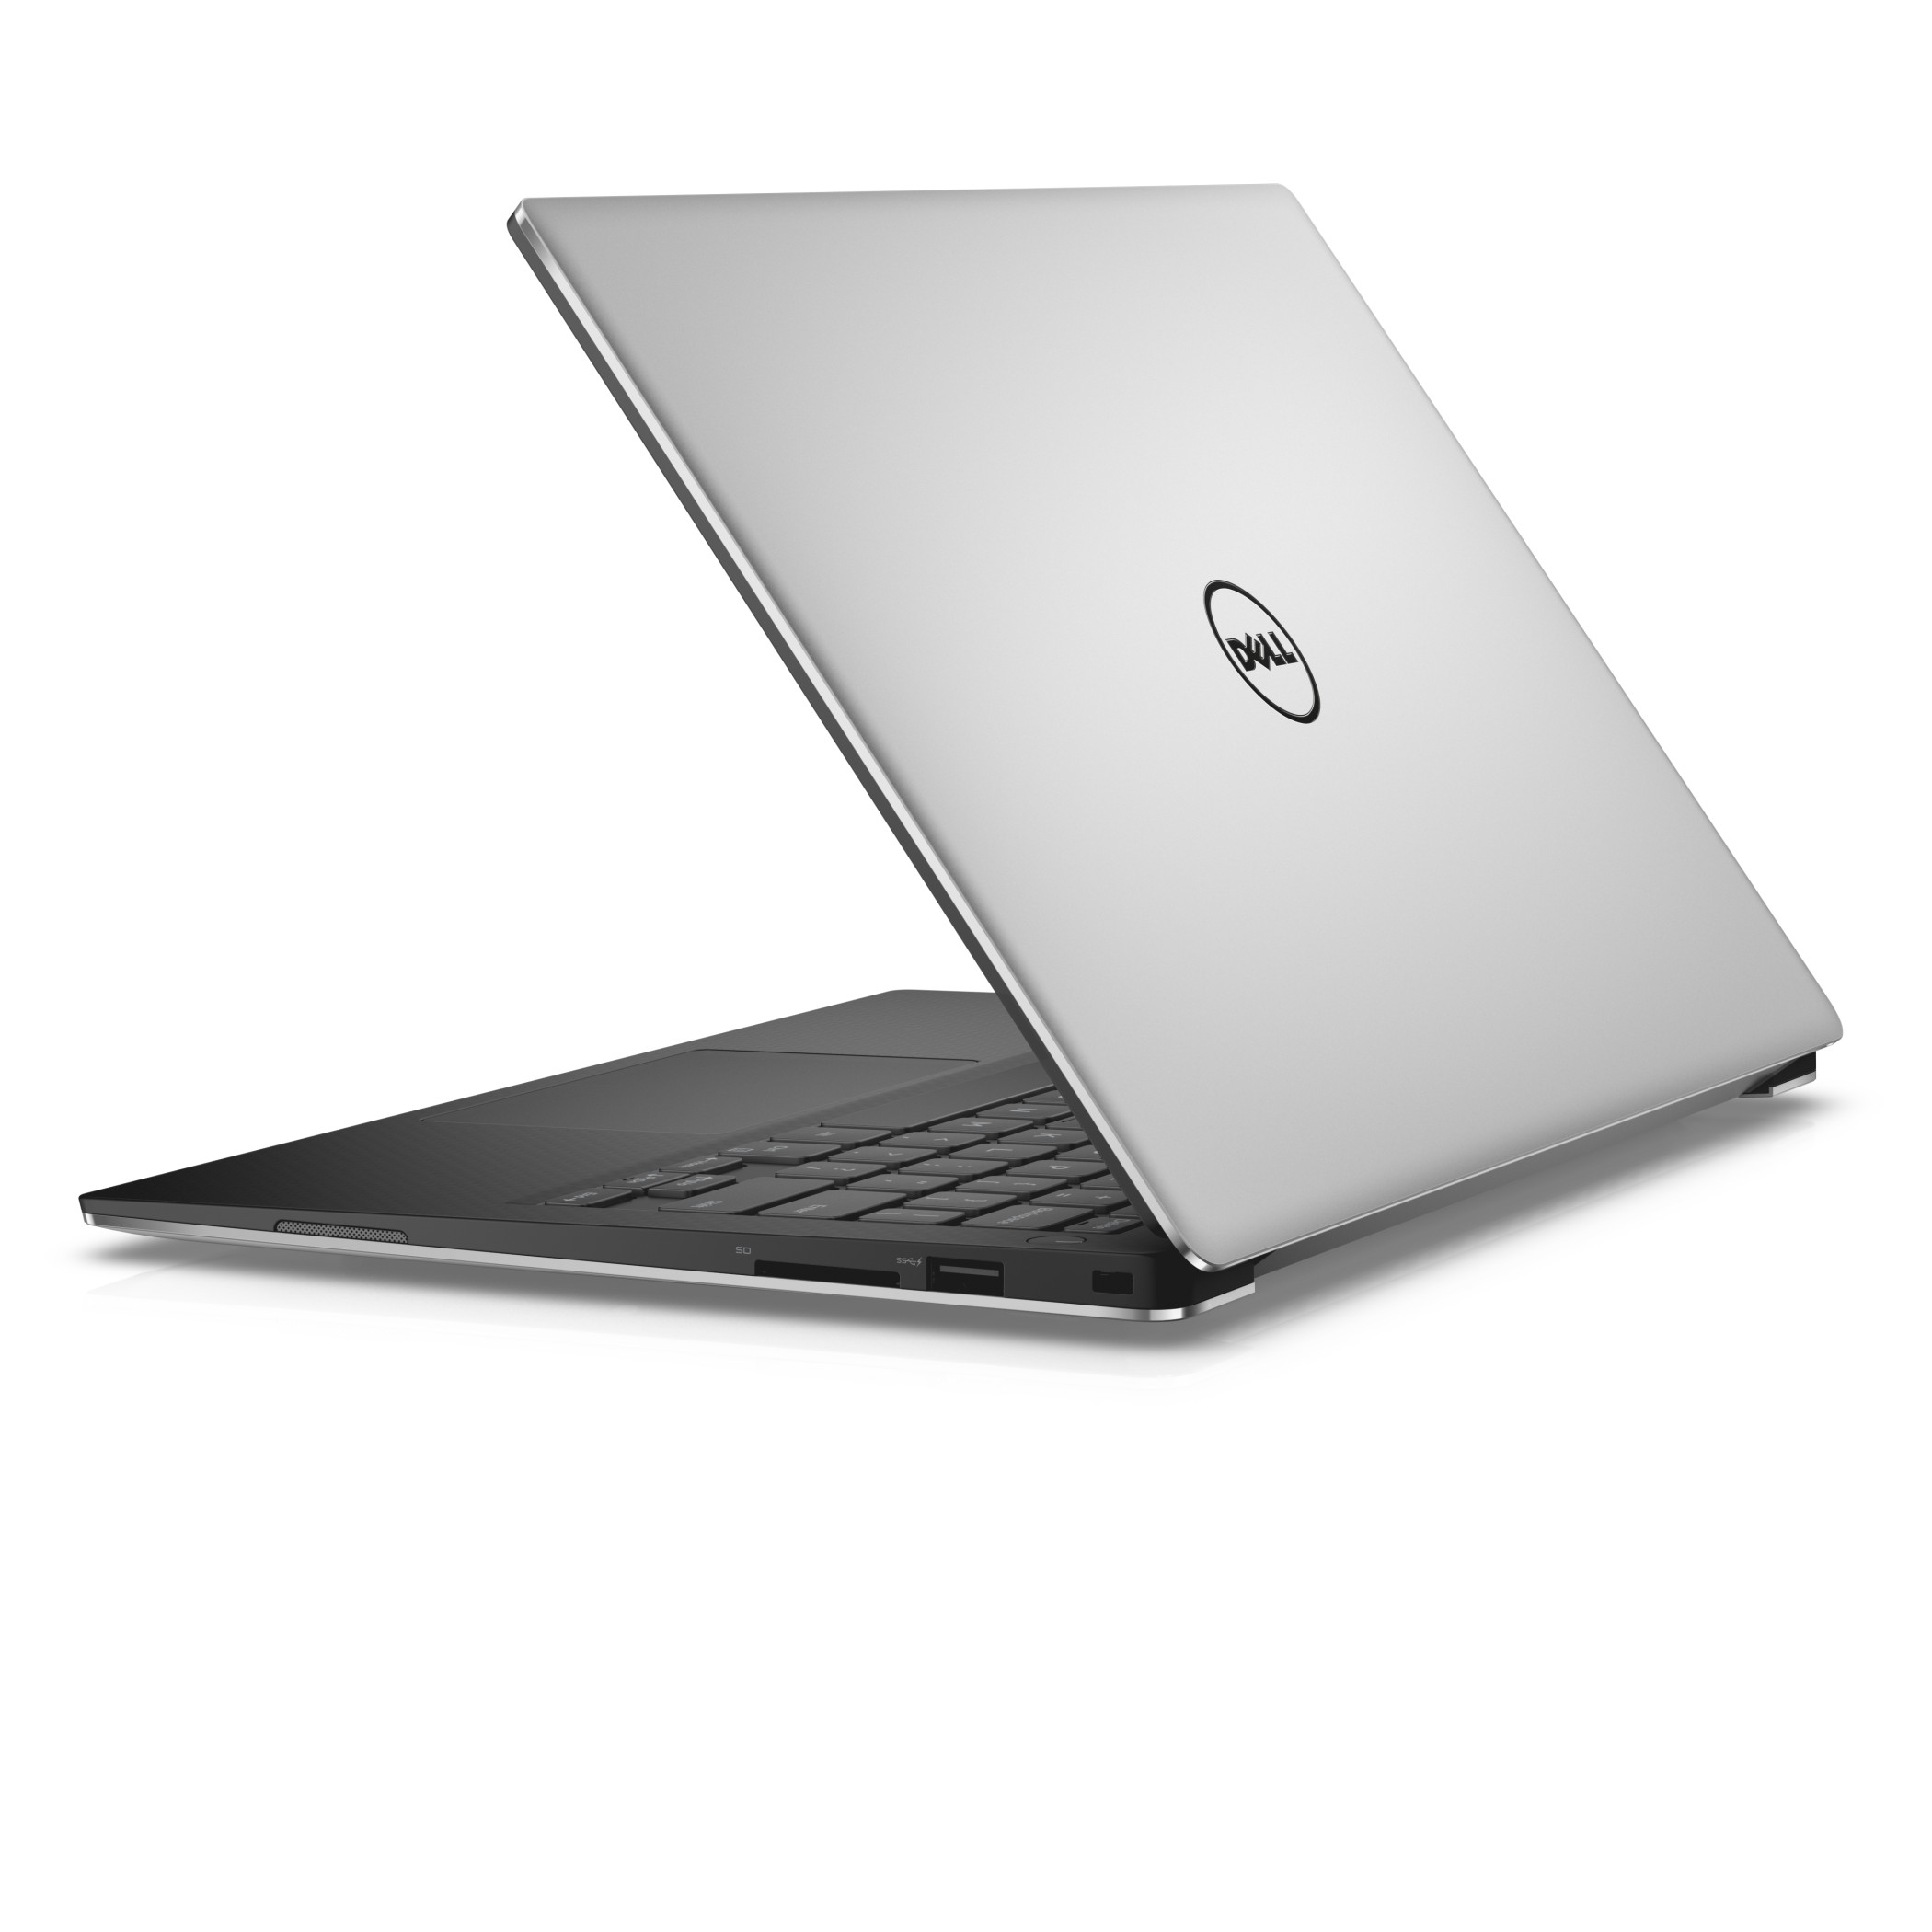 "Dell XPS 13 9350 13"" QHD Touch i5-6200U/8GB/256GB SSD/WIFI/BT/W10 (64-bit)/2RNBD"